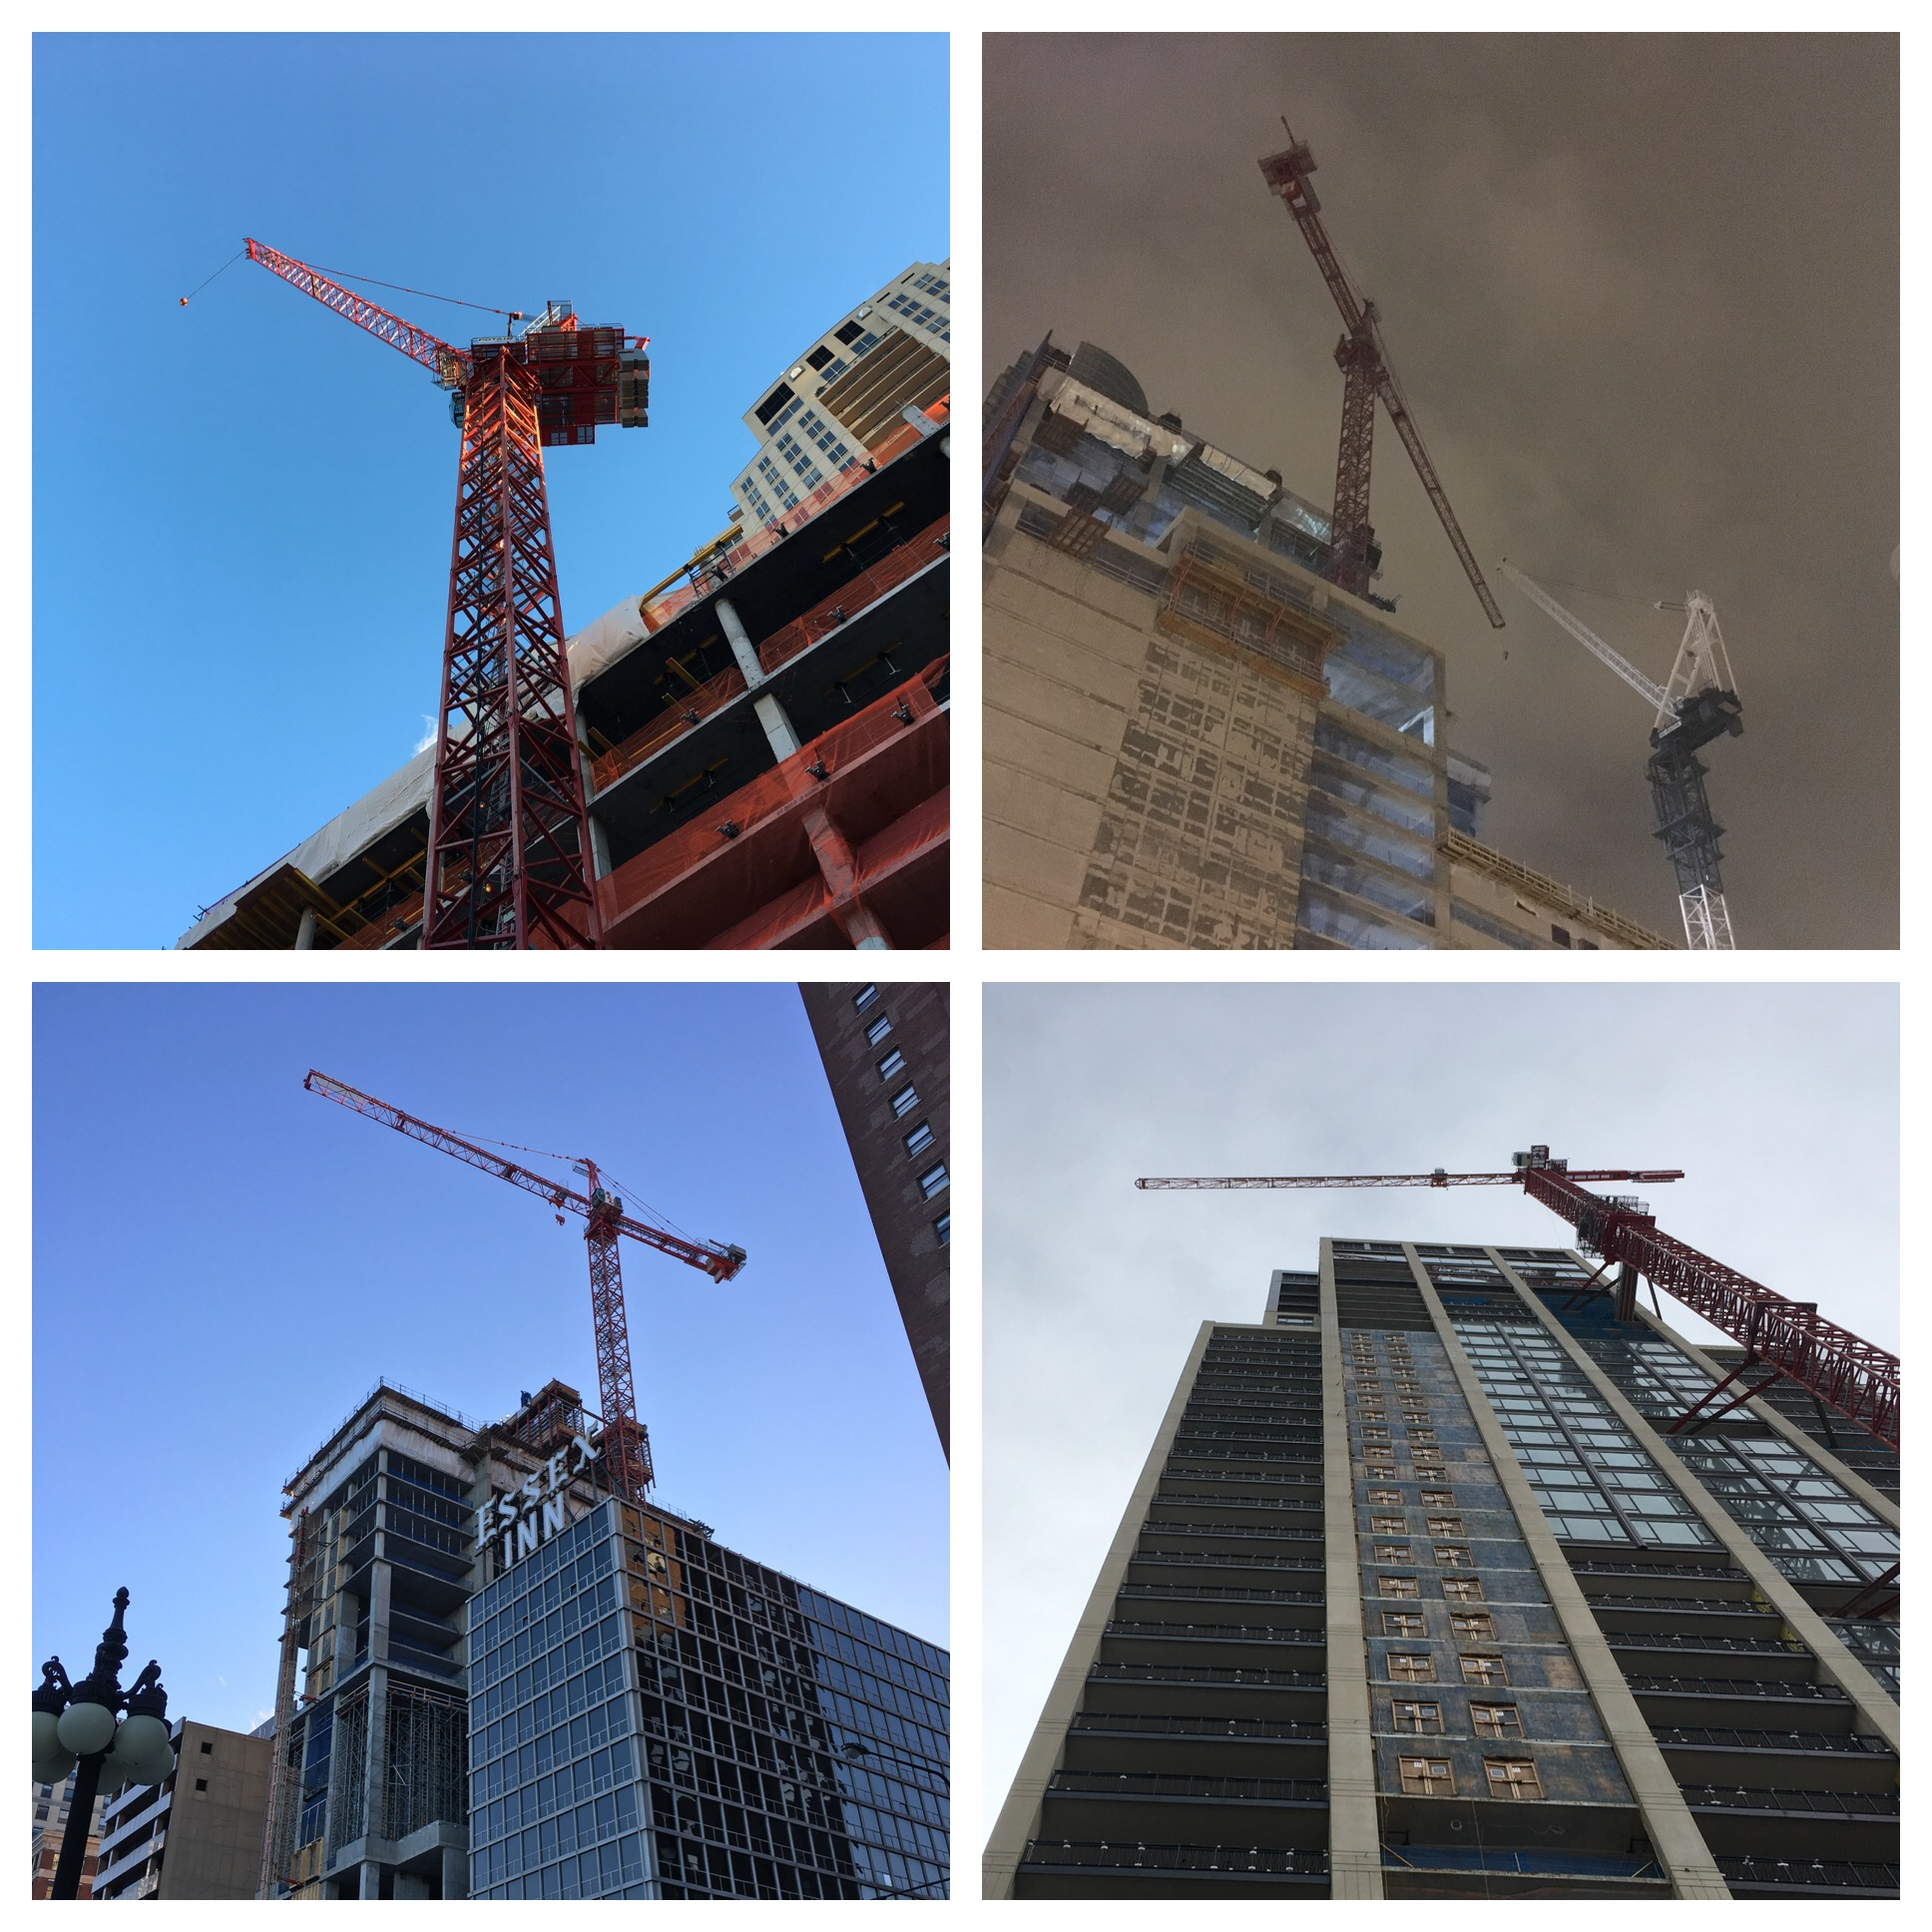 Chicago had 62 tower cranes in 2017